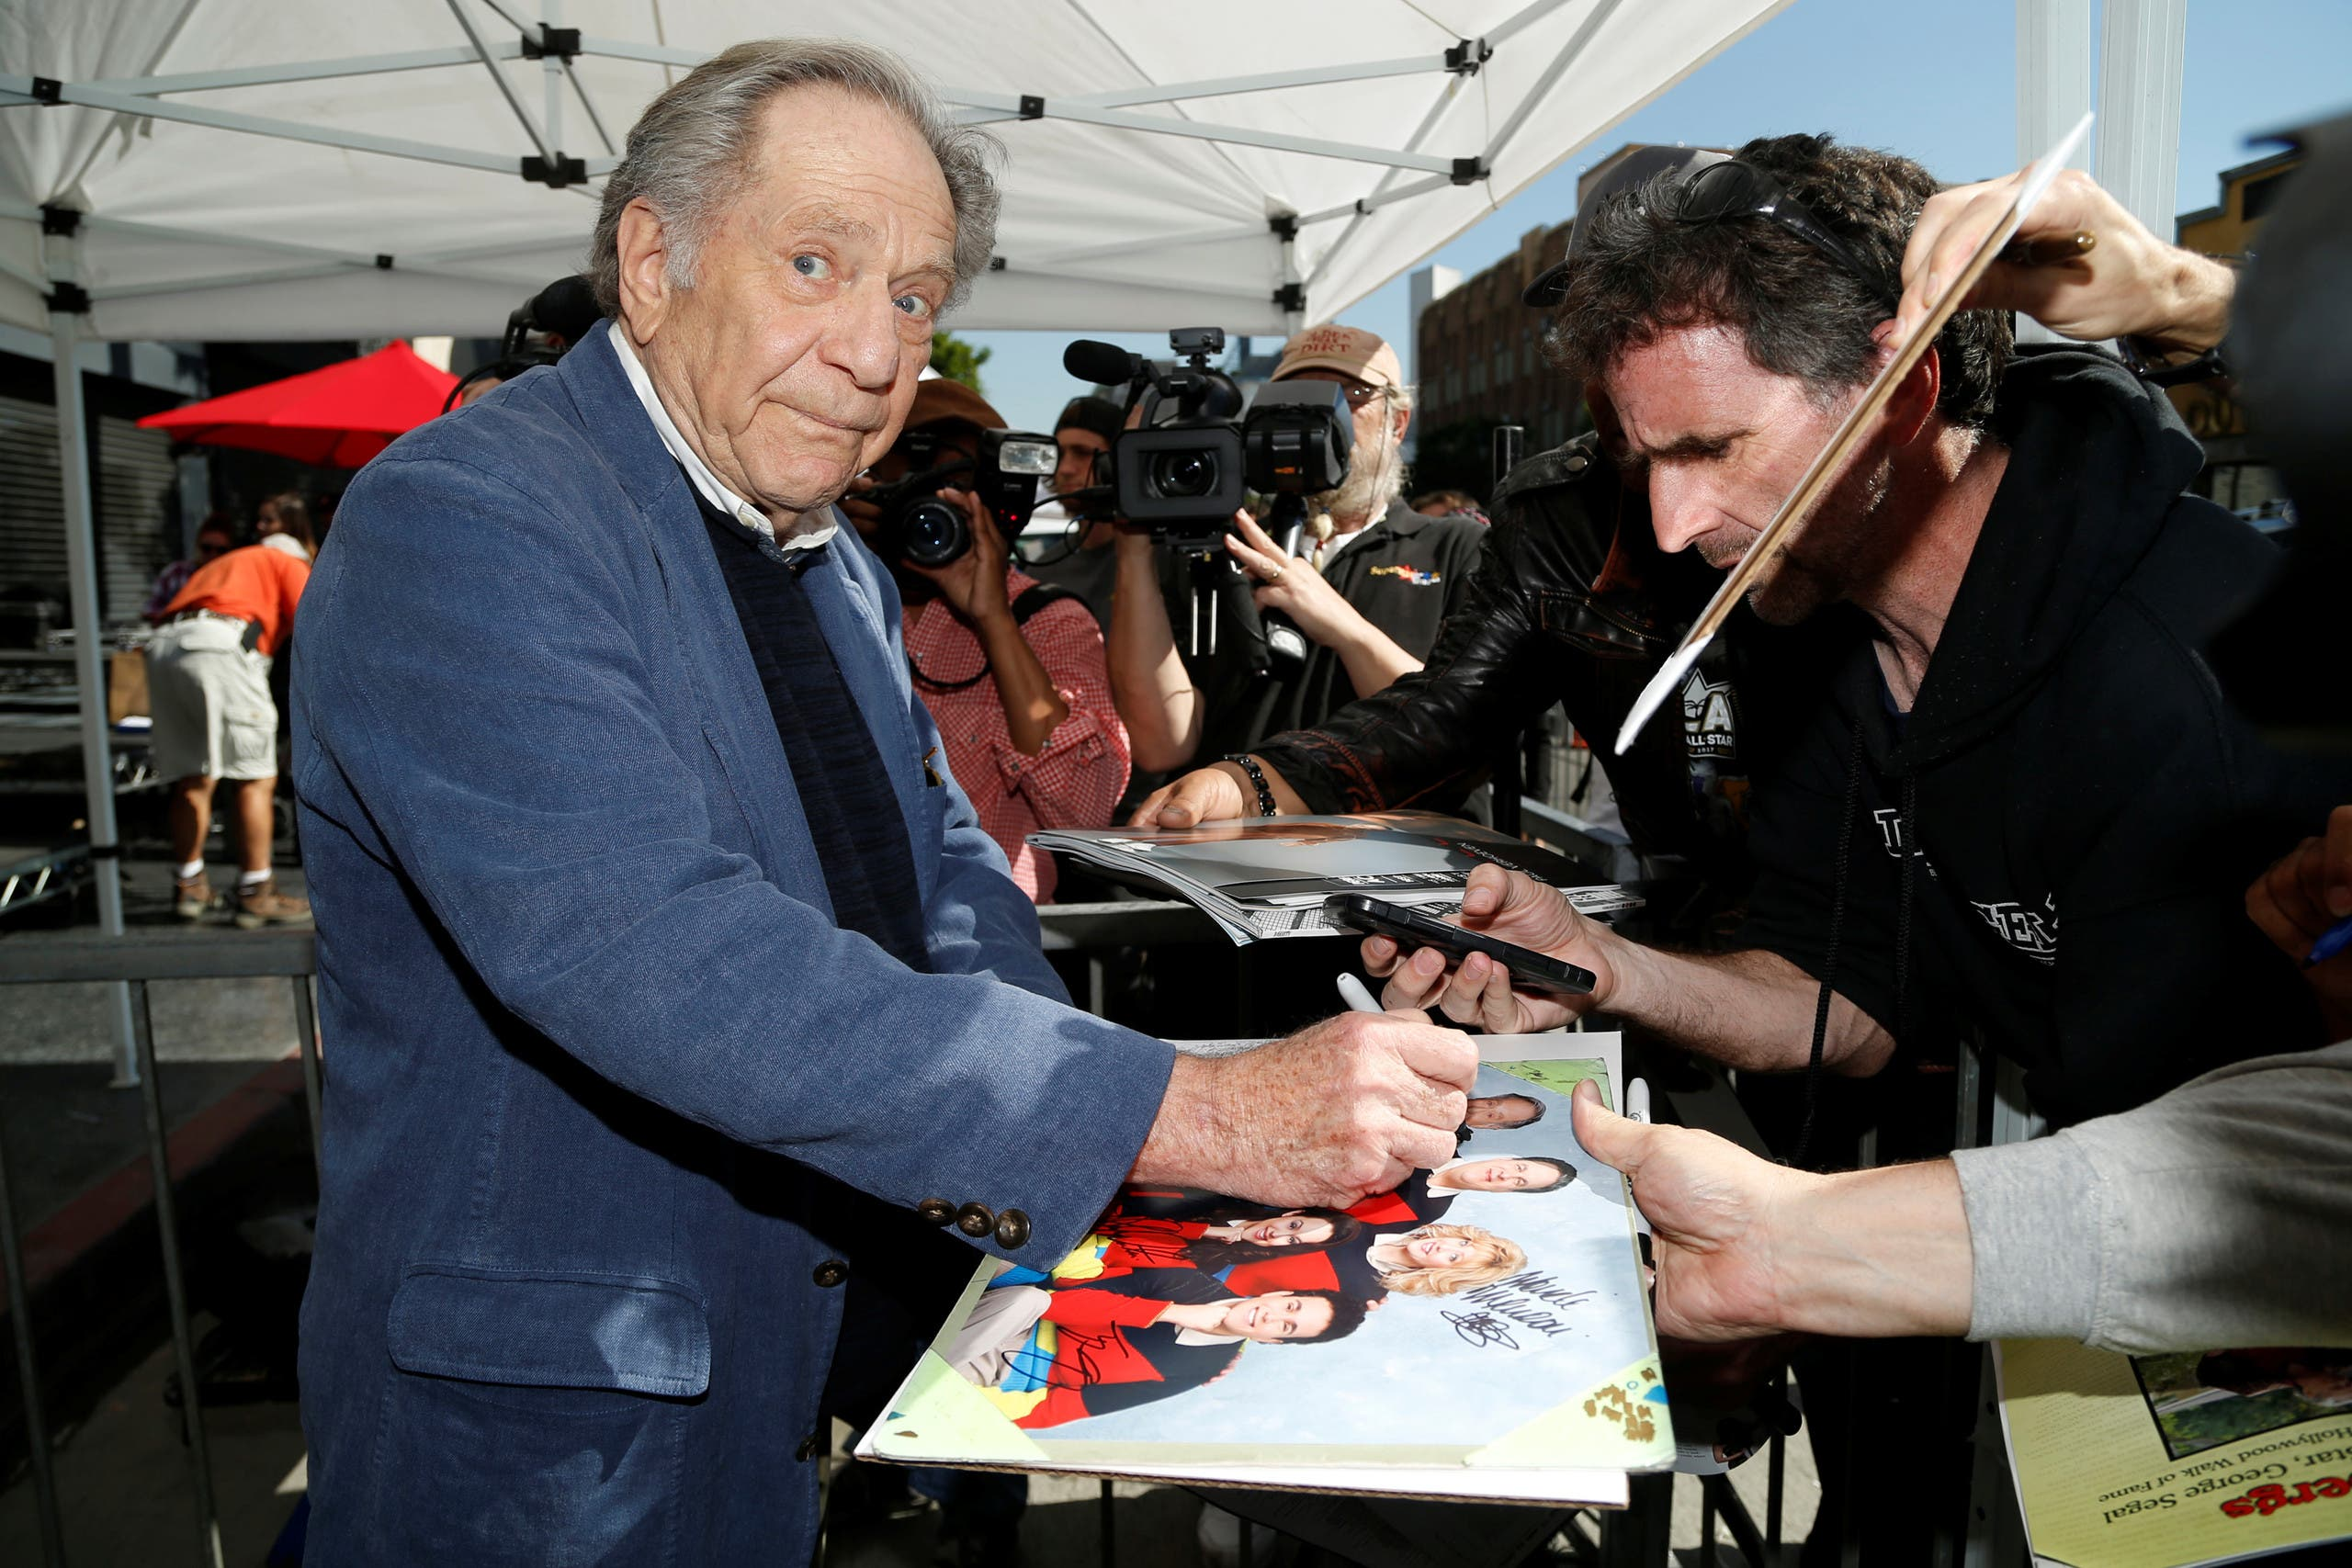 Actor George Segal signs autographs after unveiling his star on the Hollywood Walk of Fame in the Hollywood neighborhood of Los Angeles, California US, February 14, 2017. (Reuters)